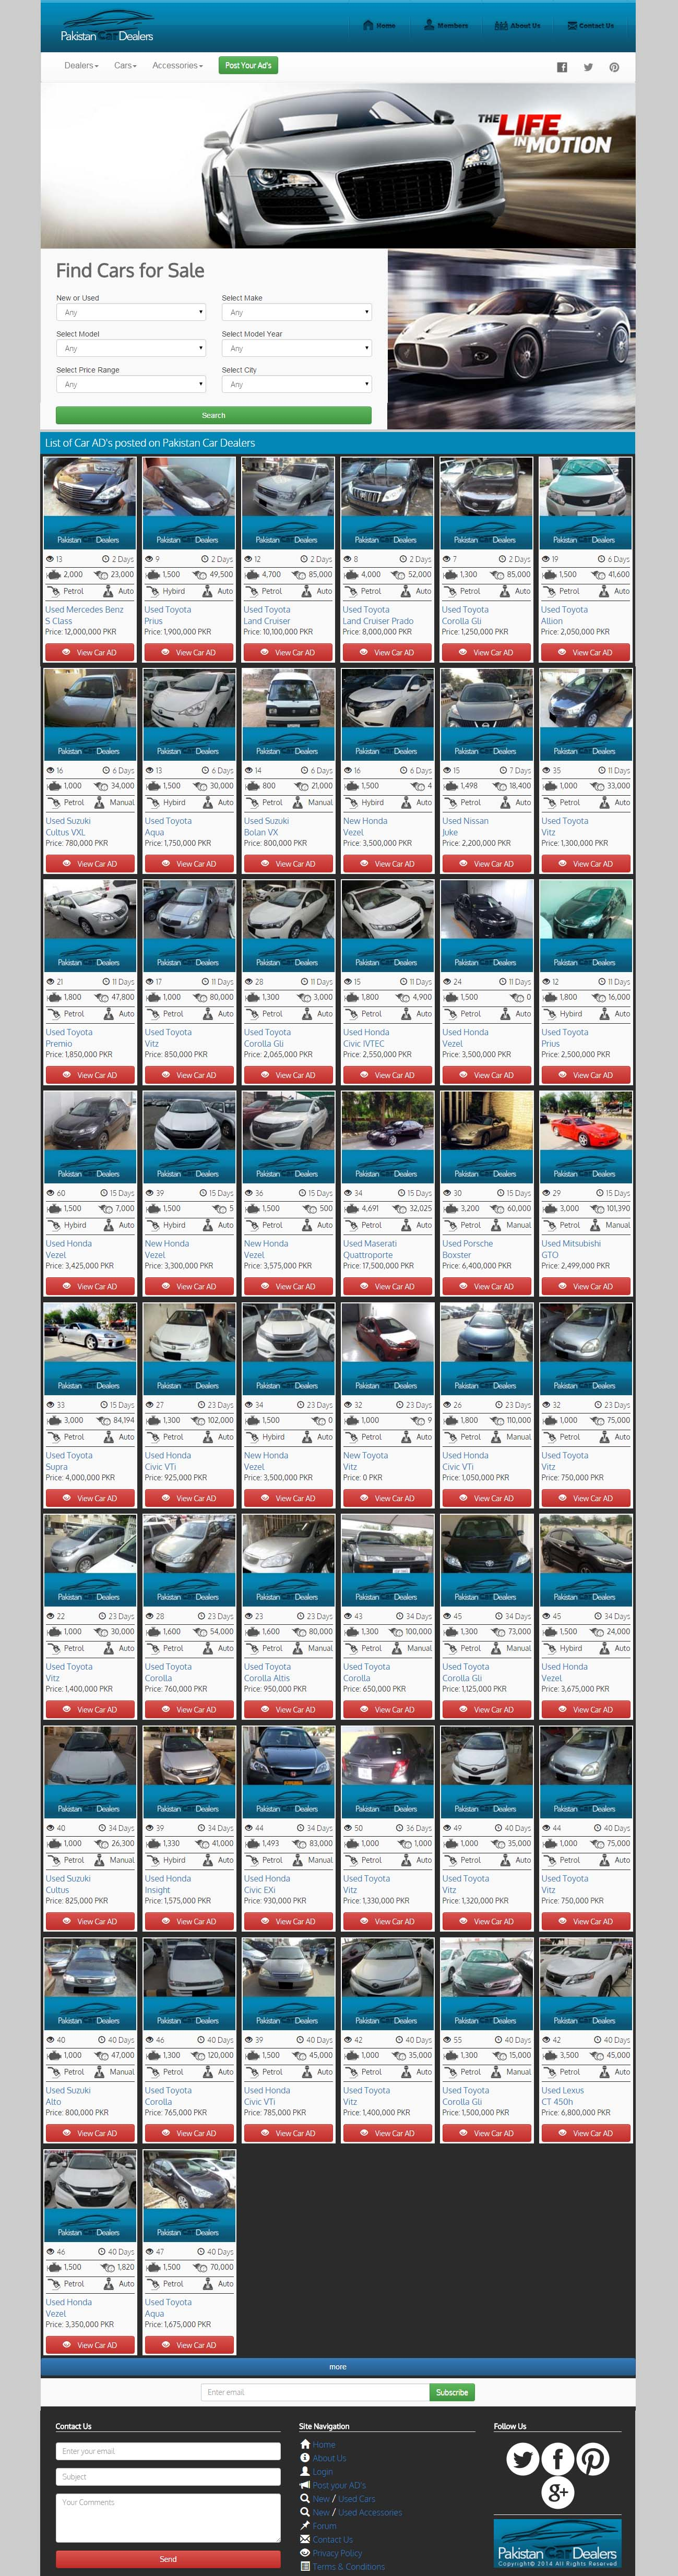 Pakistan Car Dealers Website Snap Shot